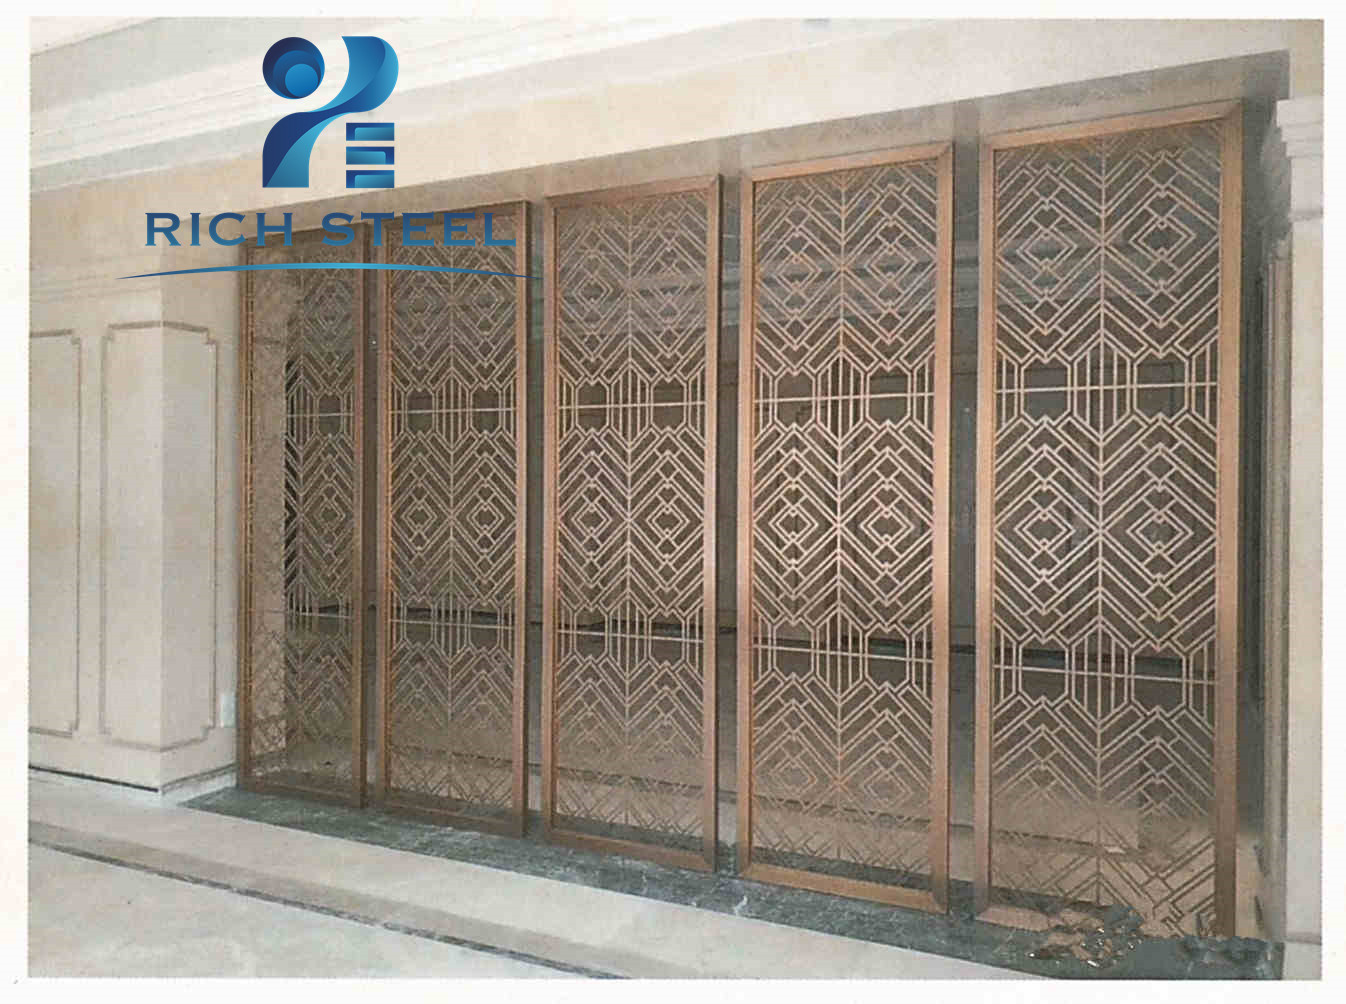 Swell Stainless Steel Metal Floor To Ceiling Room Dividers Hotel Home Interior And Landscaping Palasignezvosmurscom